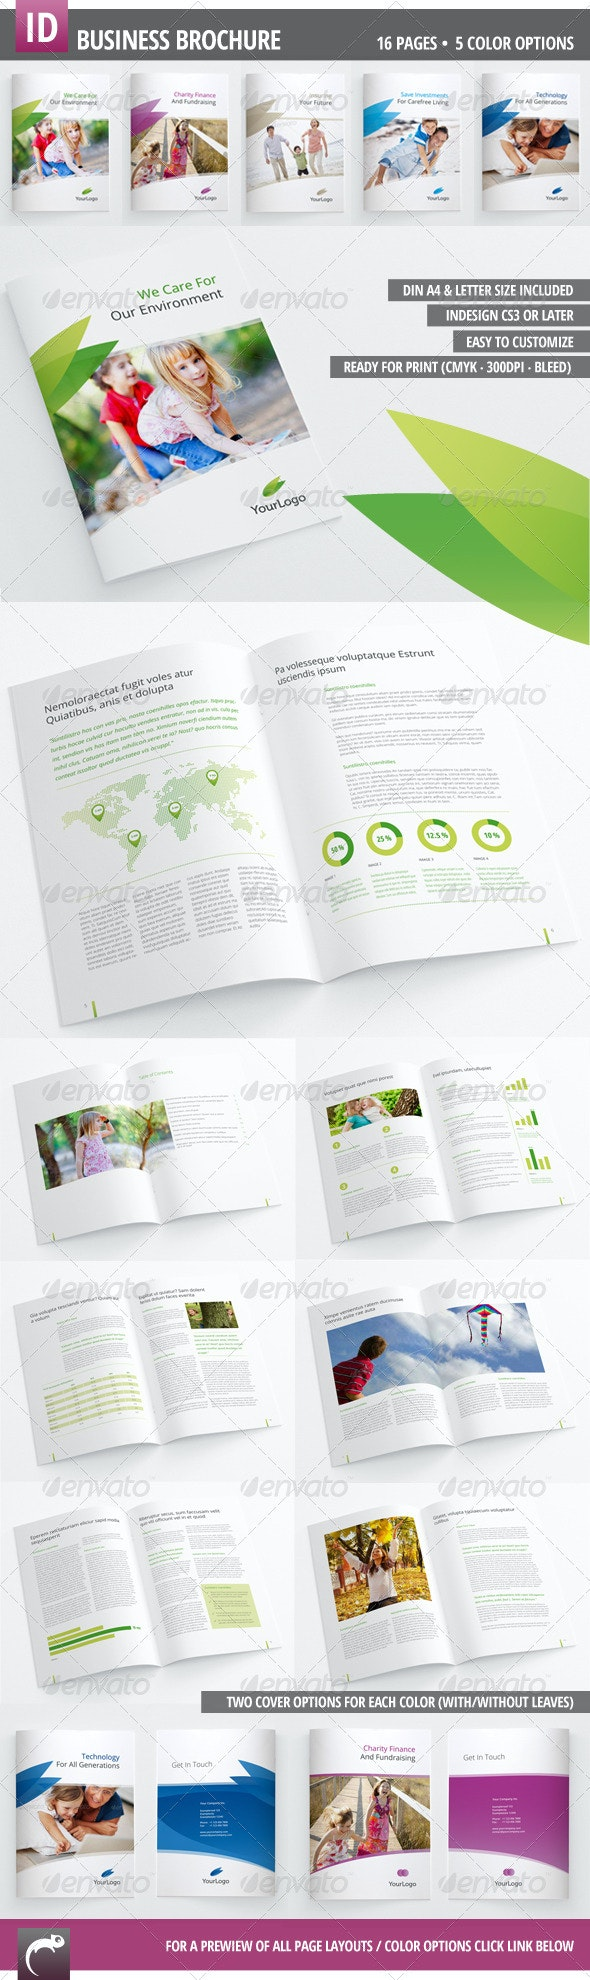 Corporate Brochure for your Business - Corporate Brochures